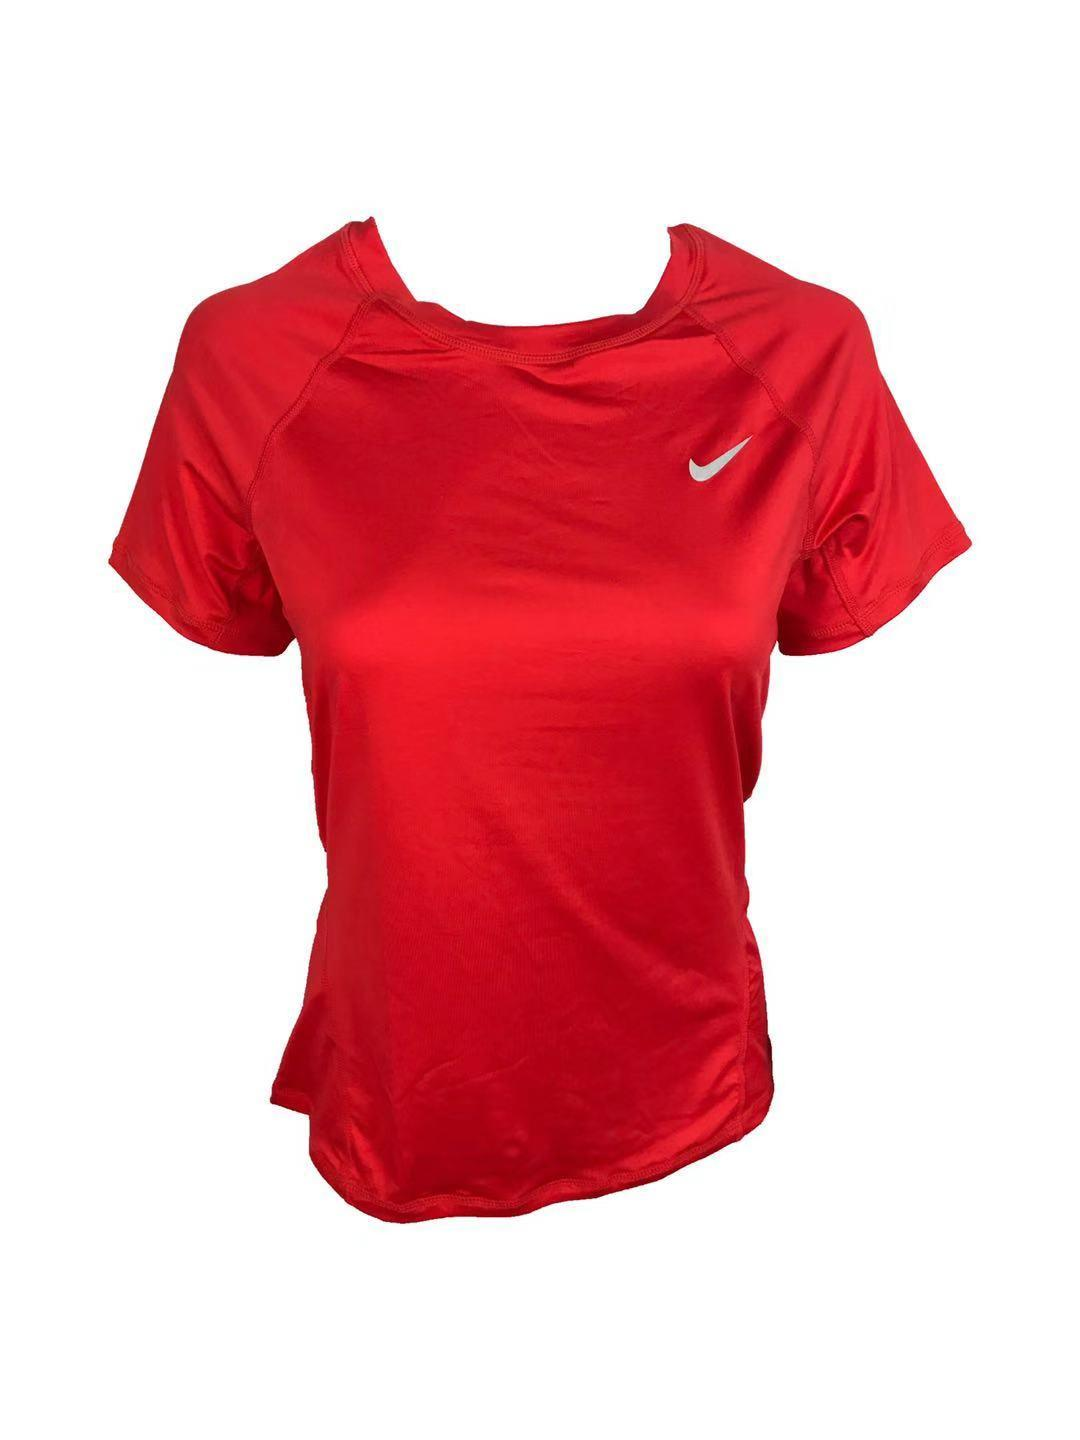 Dri-Quik Women Compression Shirt For Running /jogging/yoga/out Sports Wears Nw.2808-9colors By Kbk Sports.